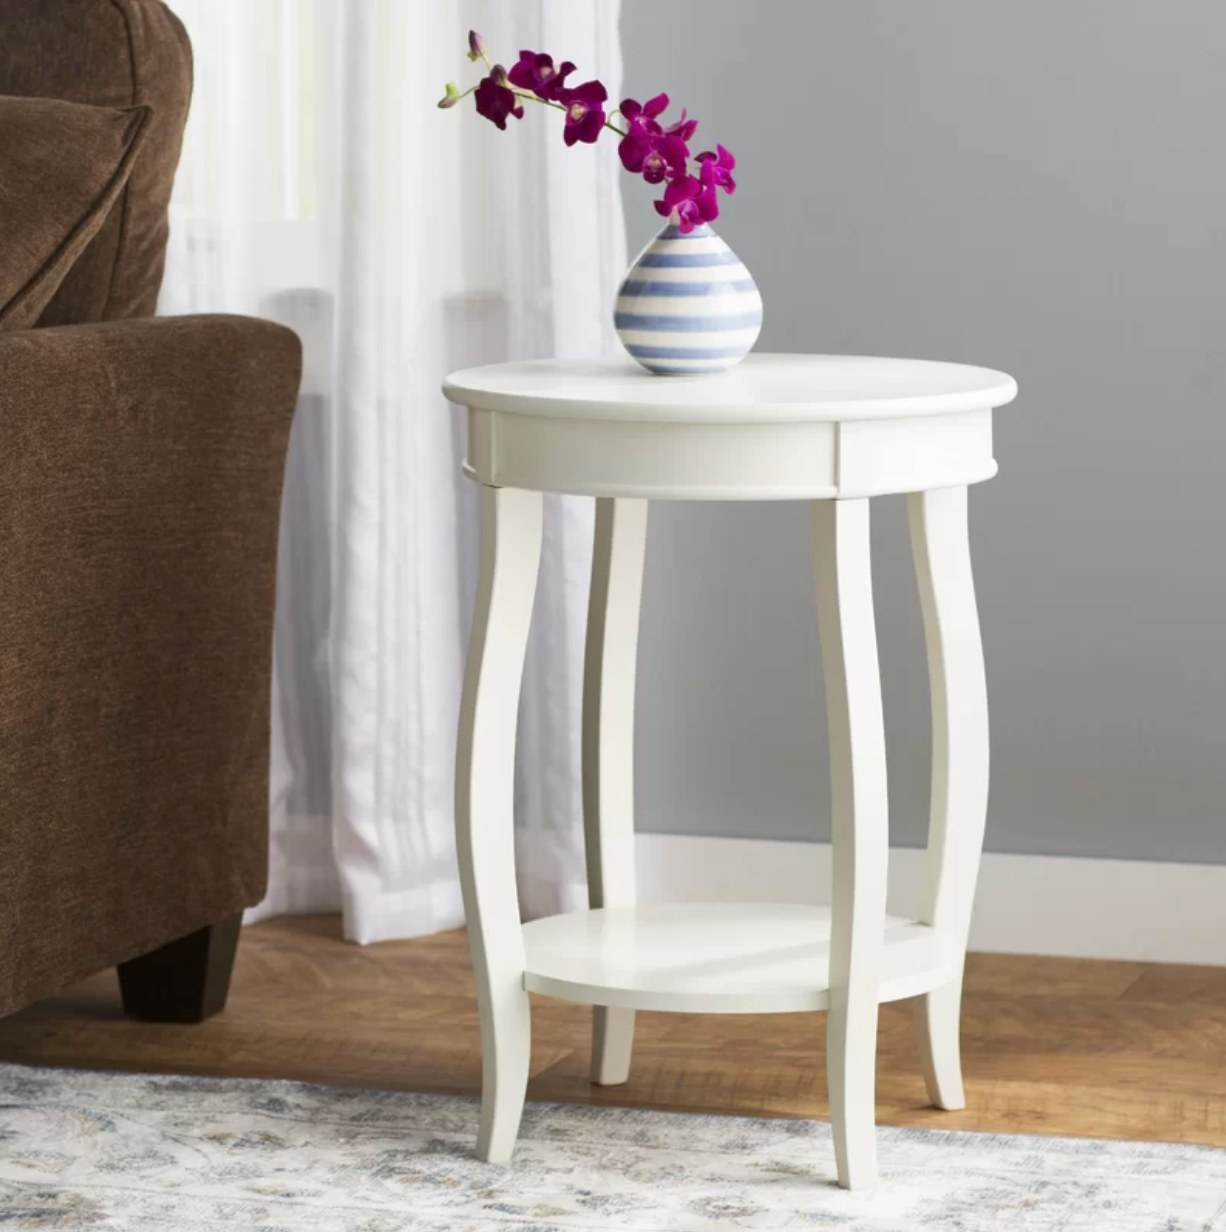 The side table in white being used as a vase holder